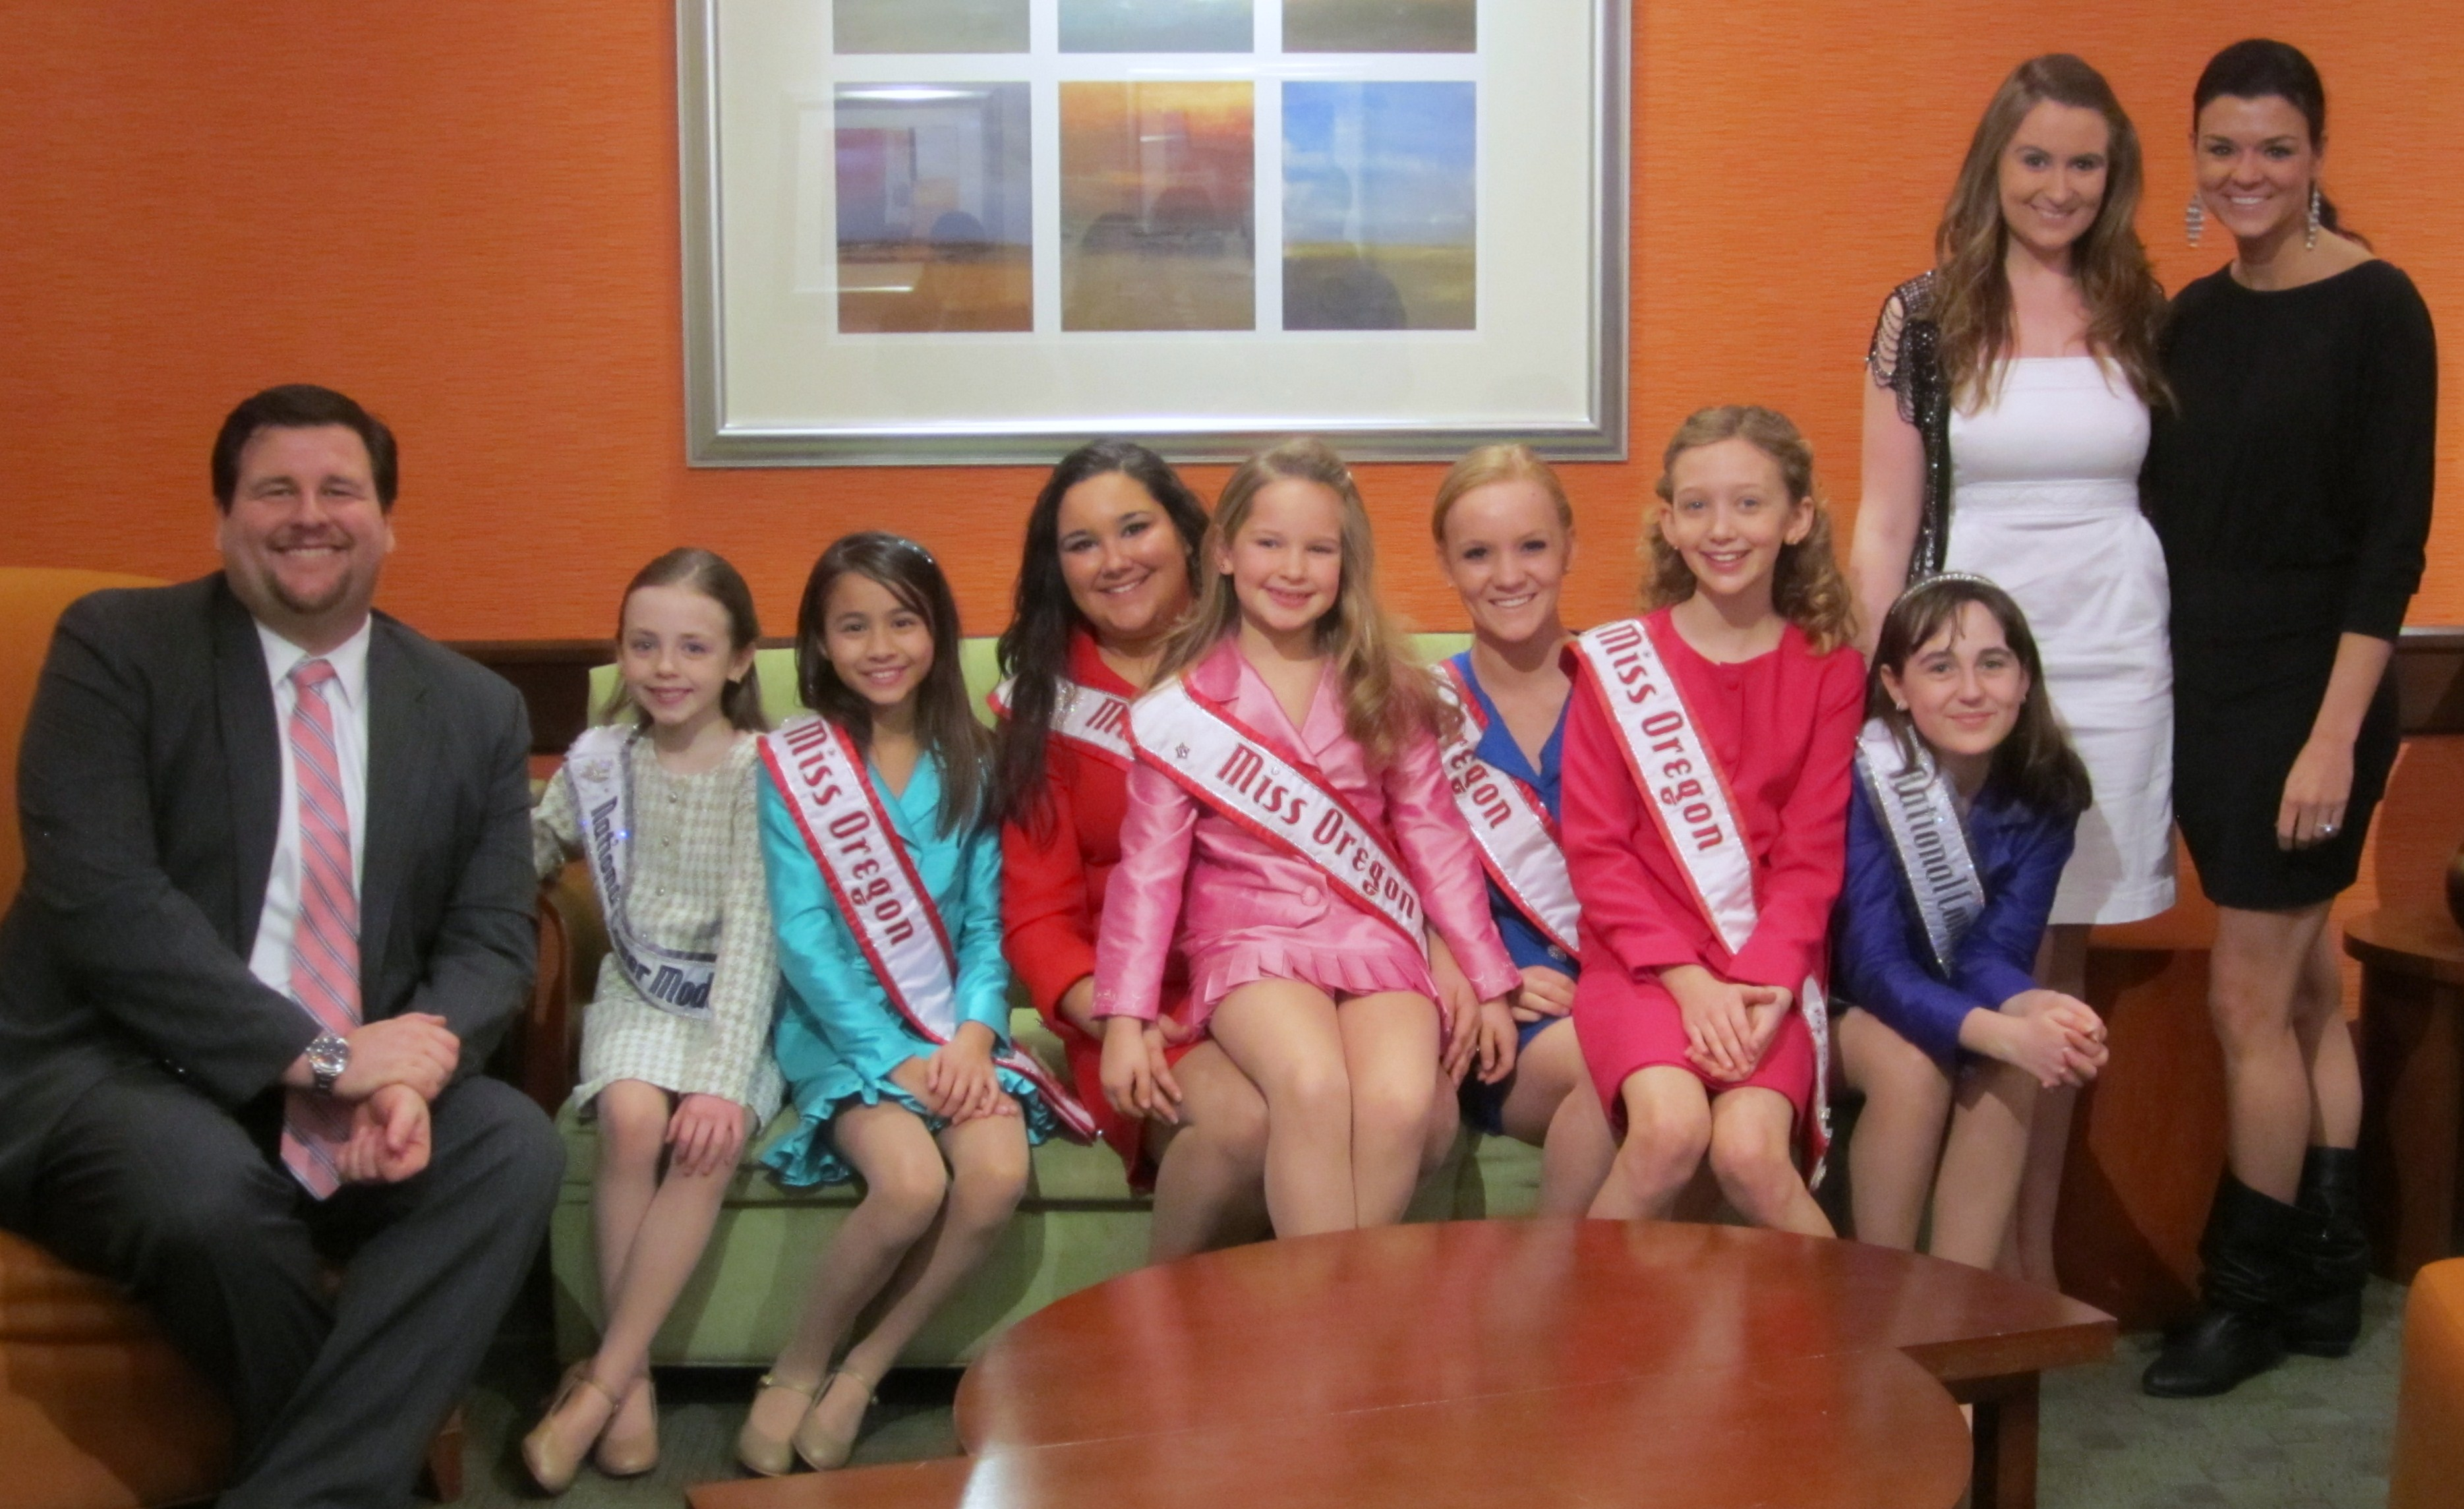 Matt Leverton's National American Miss (NAM) Pageants Blog